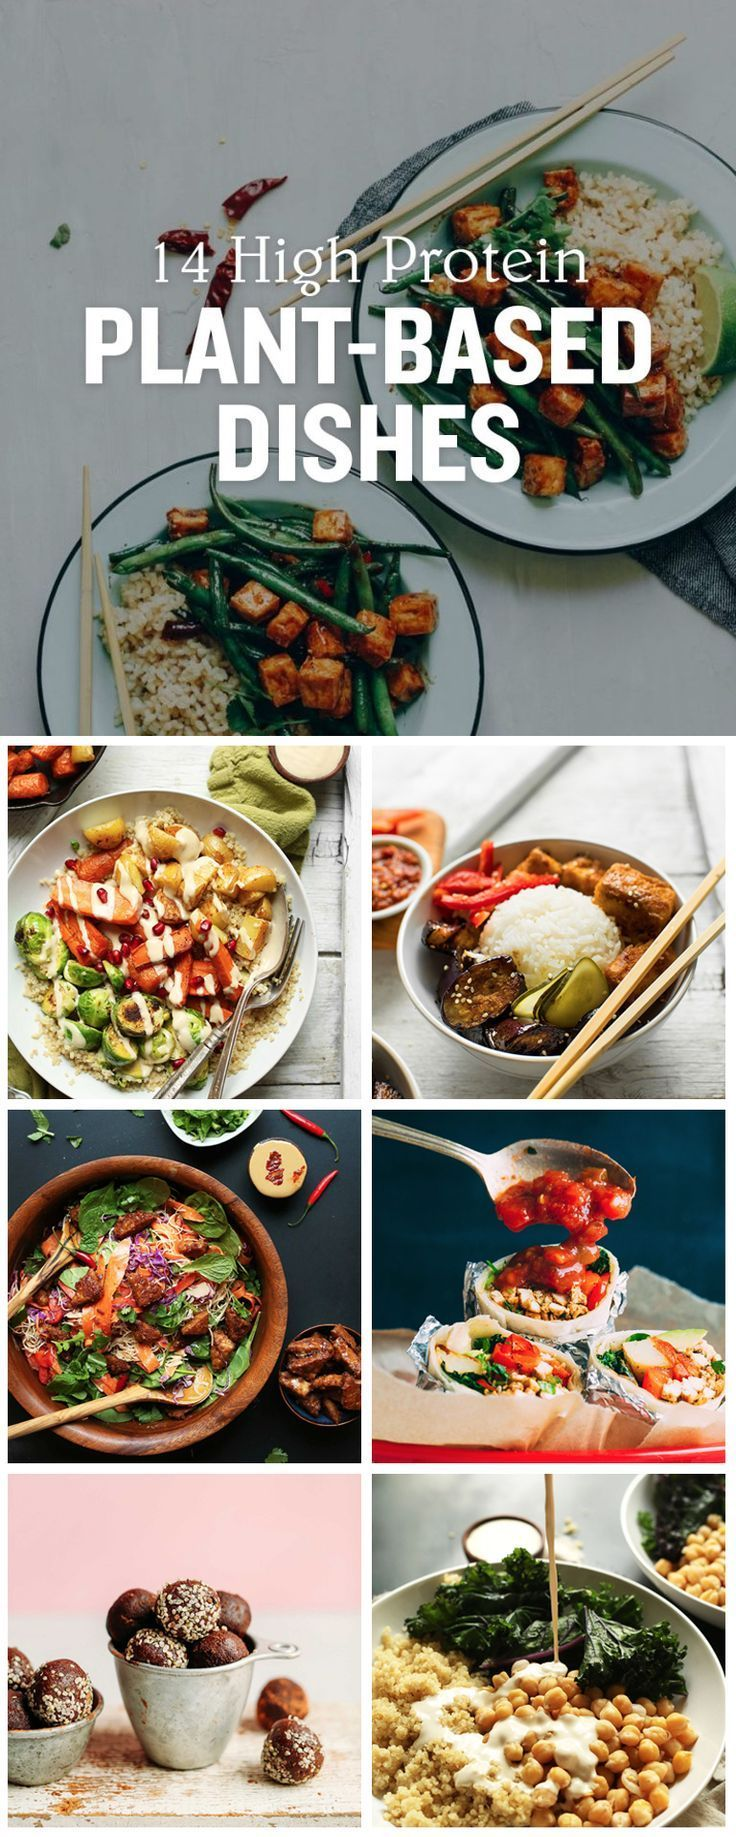 14 High Protein Plant-Based Dishes   Minimalist Baker